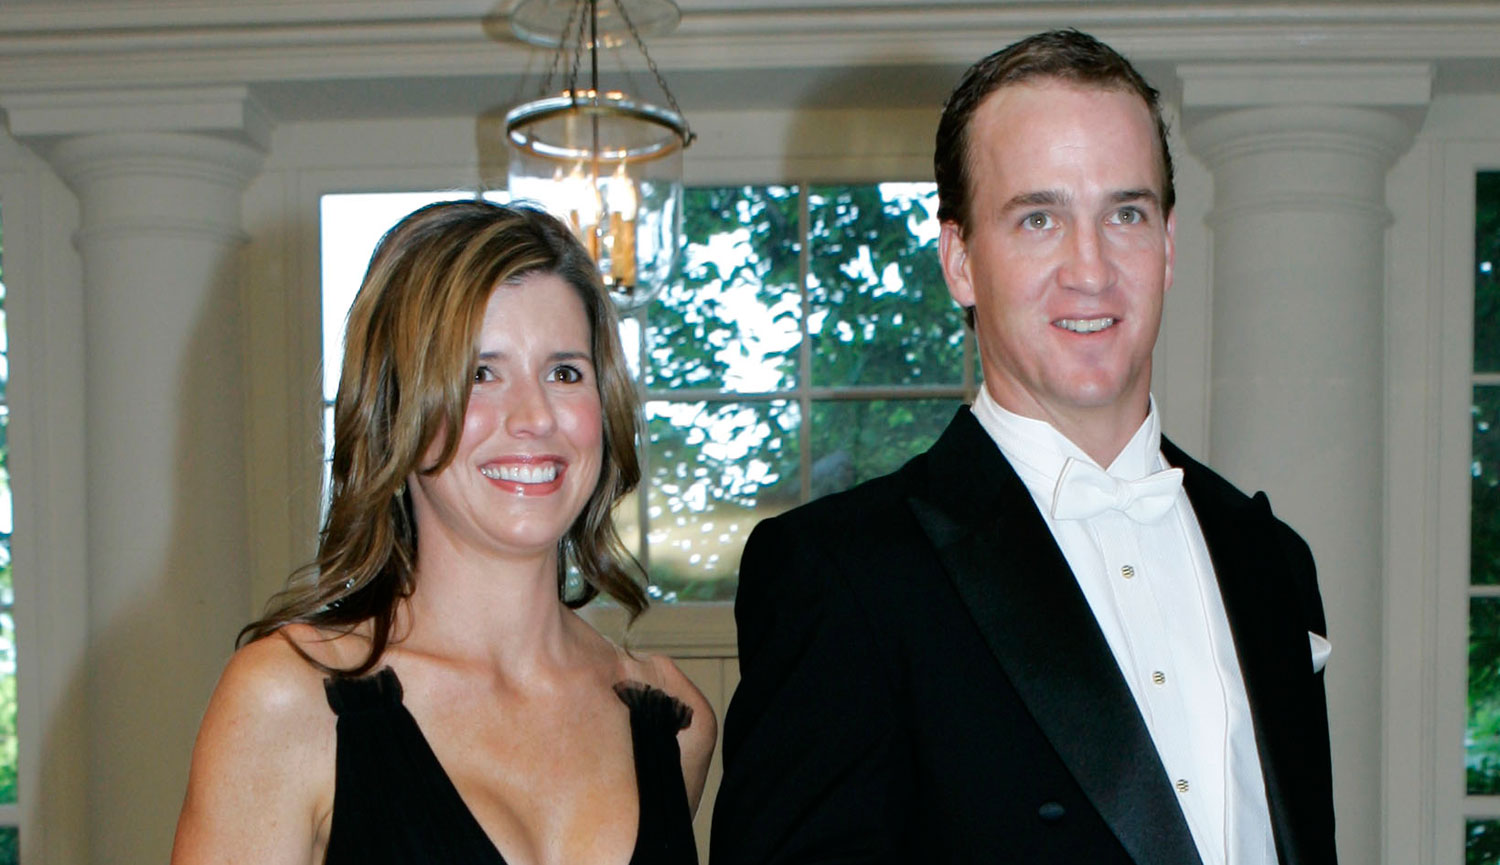 manning and his wife